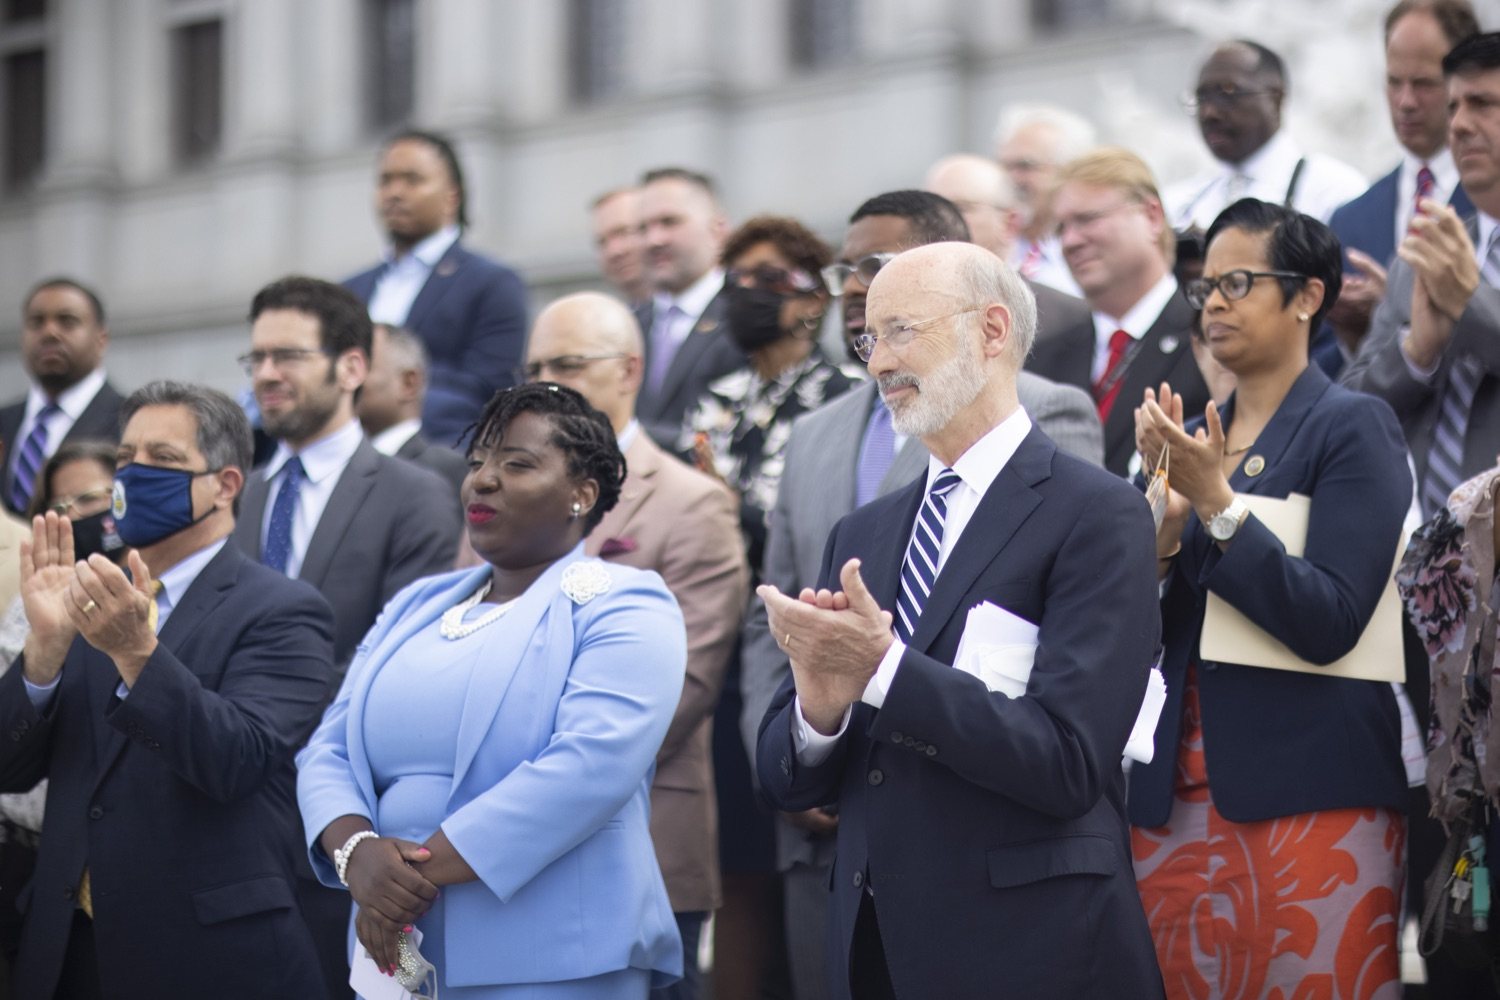 """<a href=""""https://filesource.wostreaming.net/commonwealthofpa/photo/18810_gov_fairFunding_dz_021.jpg"""" target=""""_blank"""">⇣Download Photo<br></a>Pennsylvania Governor Tom Wolf listening to speakers.  Continuing their commitment to students and working families, Governor Tom Wolf and House and Senate Democratic Leaders held a Capitol press conference today to highlight the injustice in the states school funding system and call for fair funding of every district.  Harrisburg, PA   June 8, 2021"""